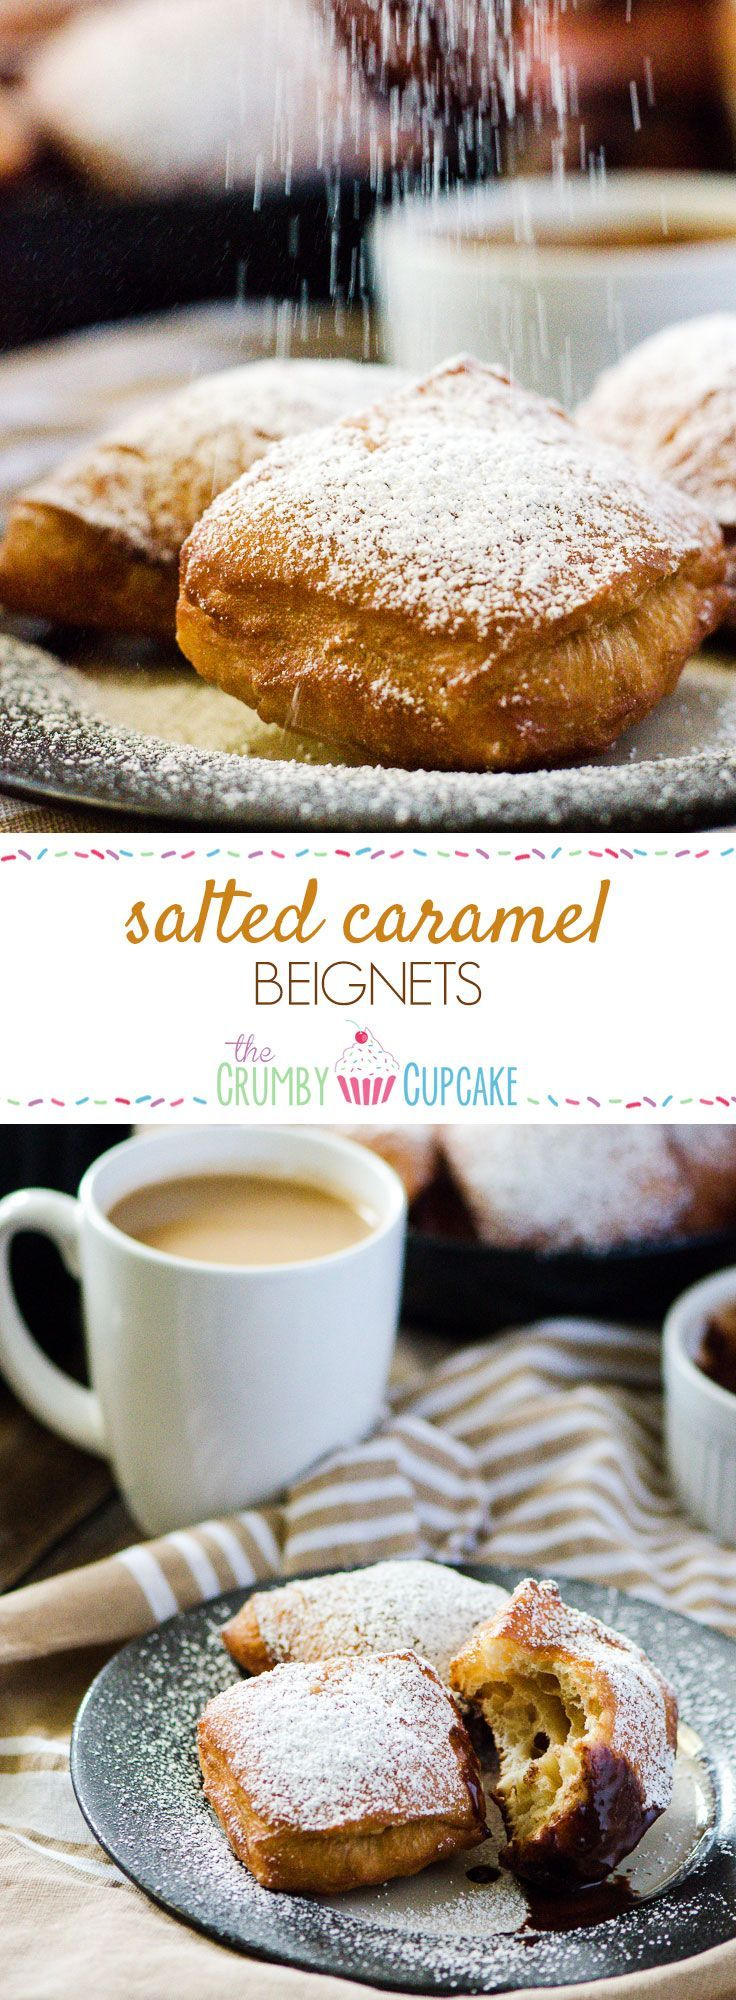 Salted Caramel Beignets | Bring a little New Orleans into your kitchen - salted caramel flavored sweet dough beignets, deep-fried and served hot with a sweet chocolate dipping sauce! #salted #caramel #beignets #donuts #chocolate #dessert #recipe